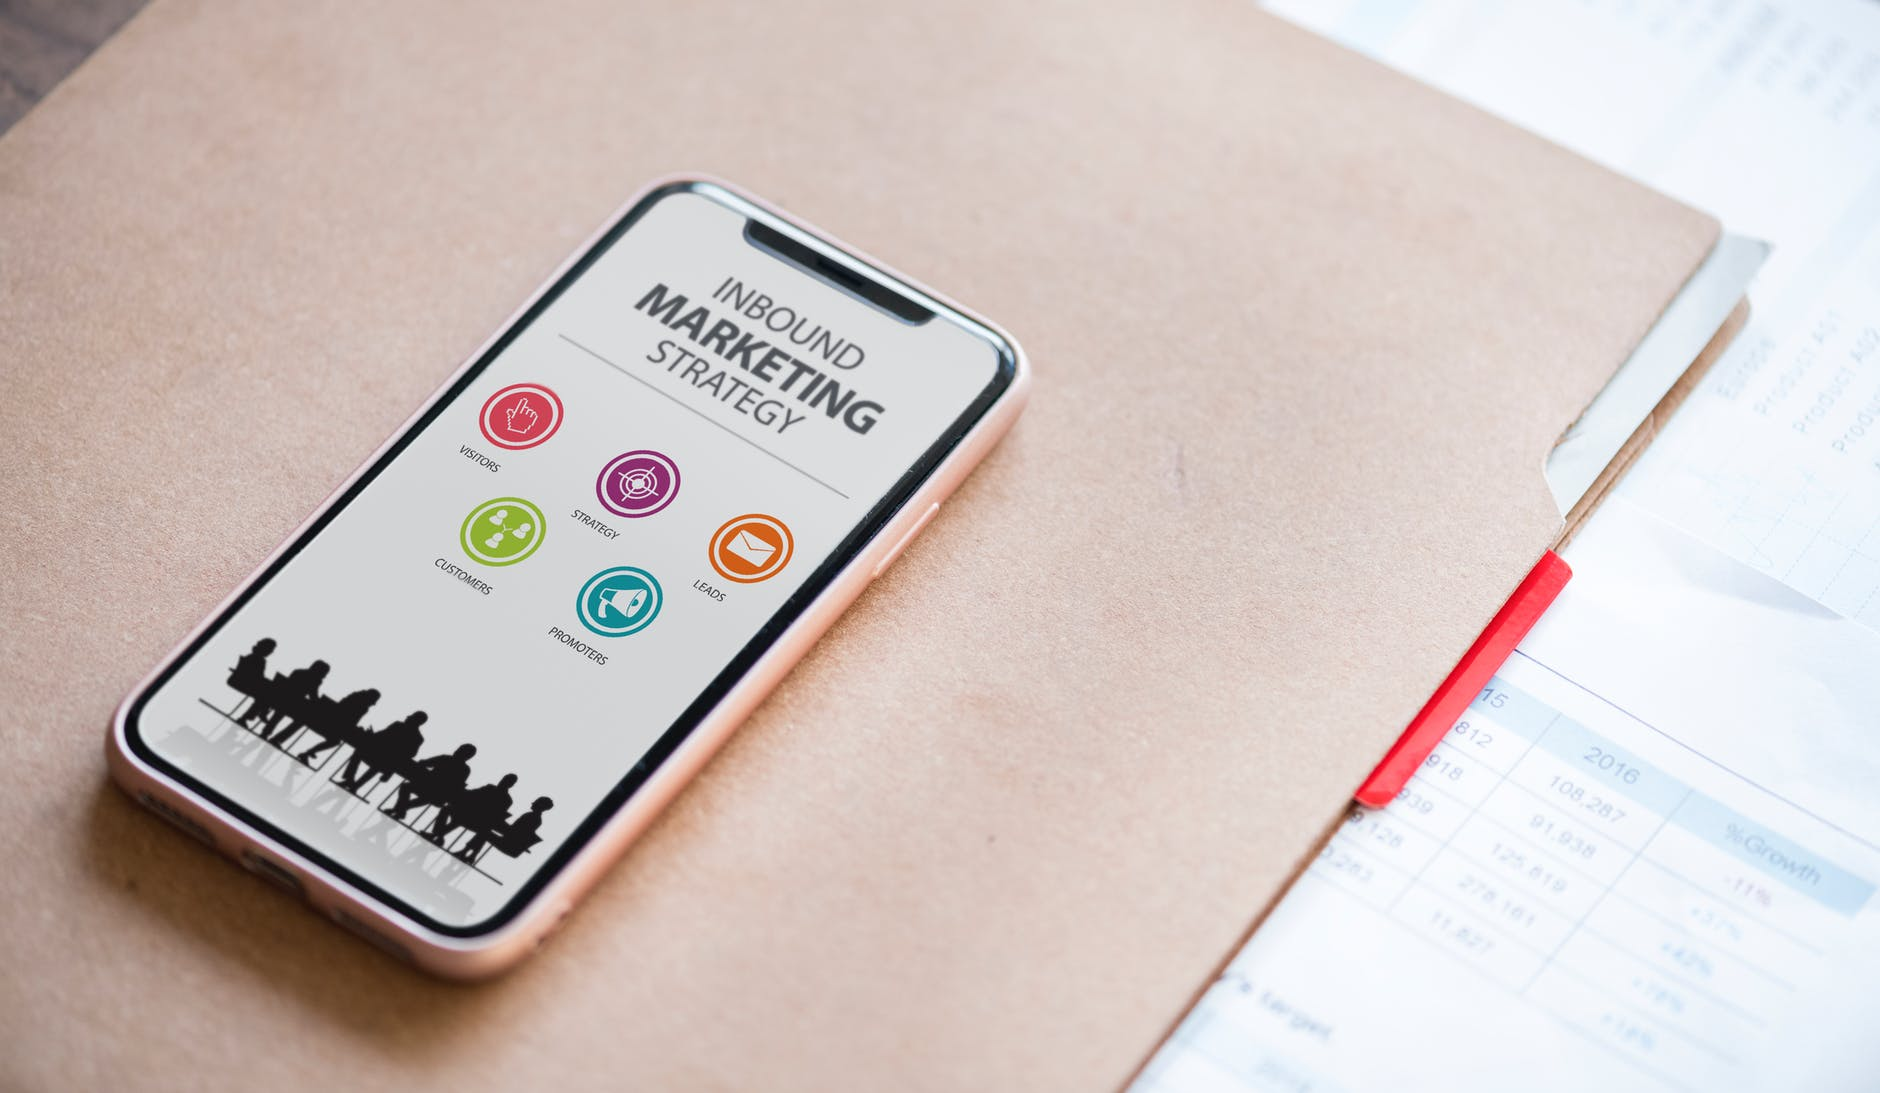 Optimising For Mobile: 5 Killer Financial Marketing Tips